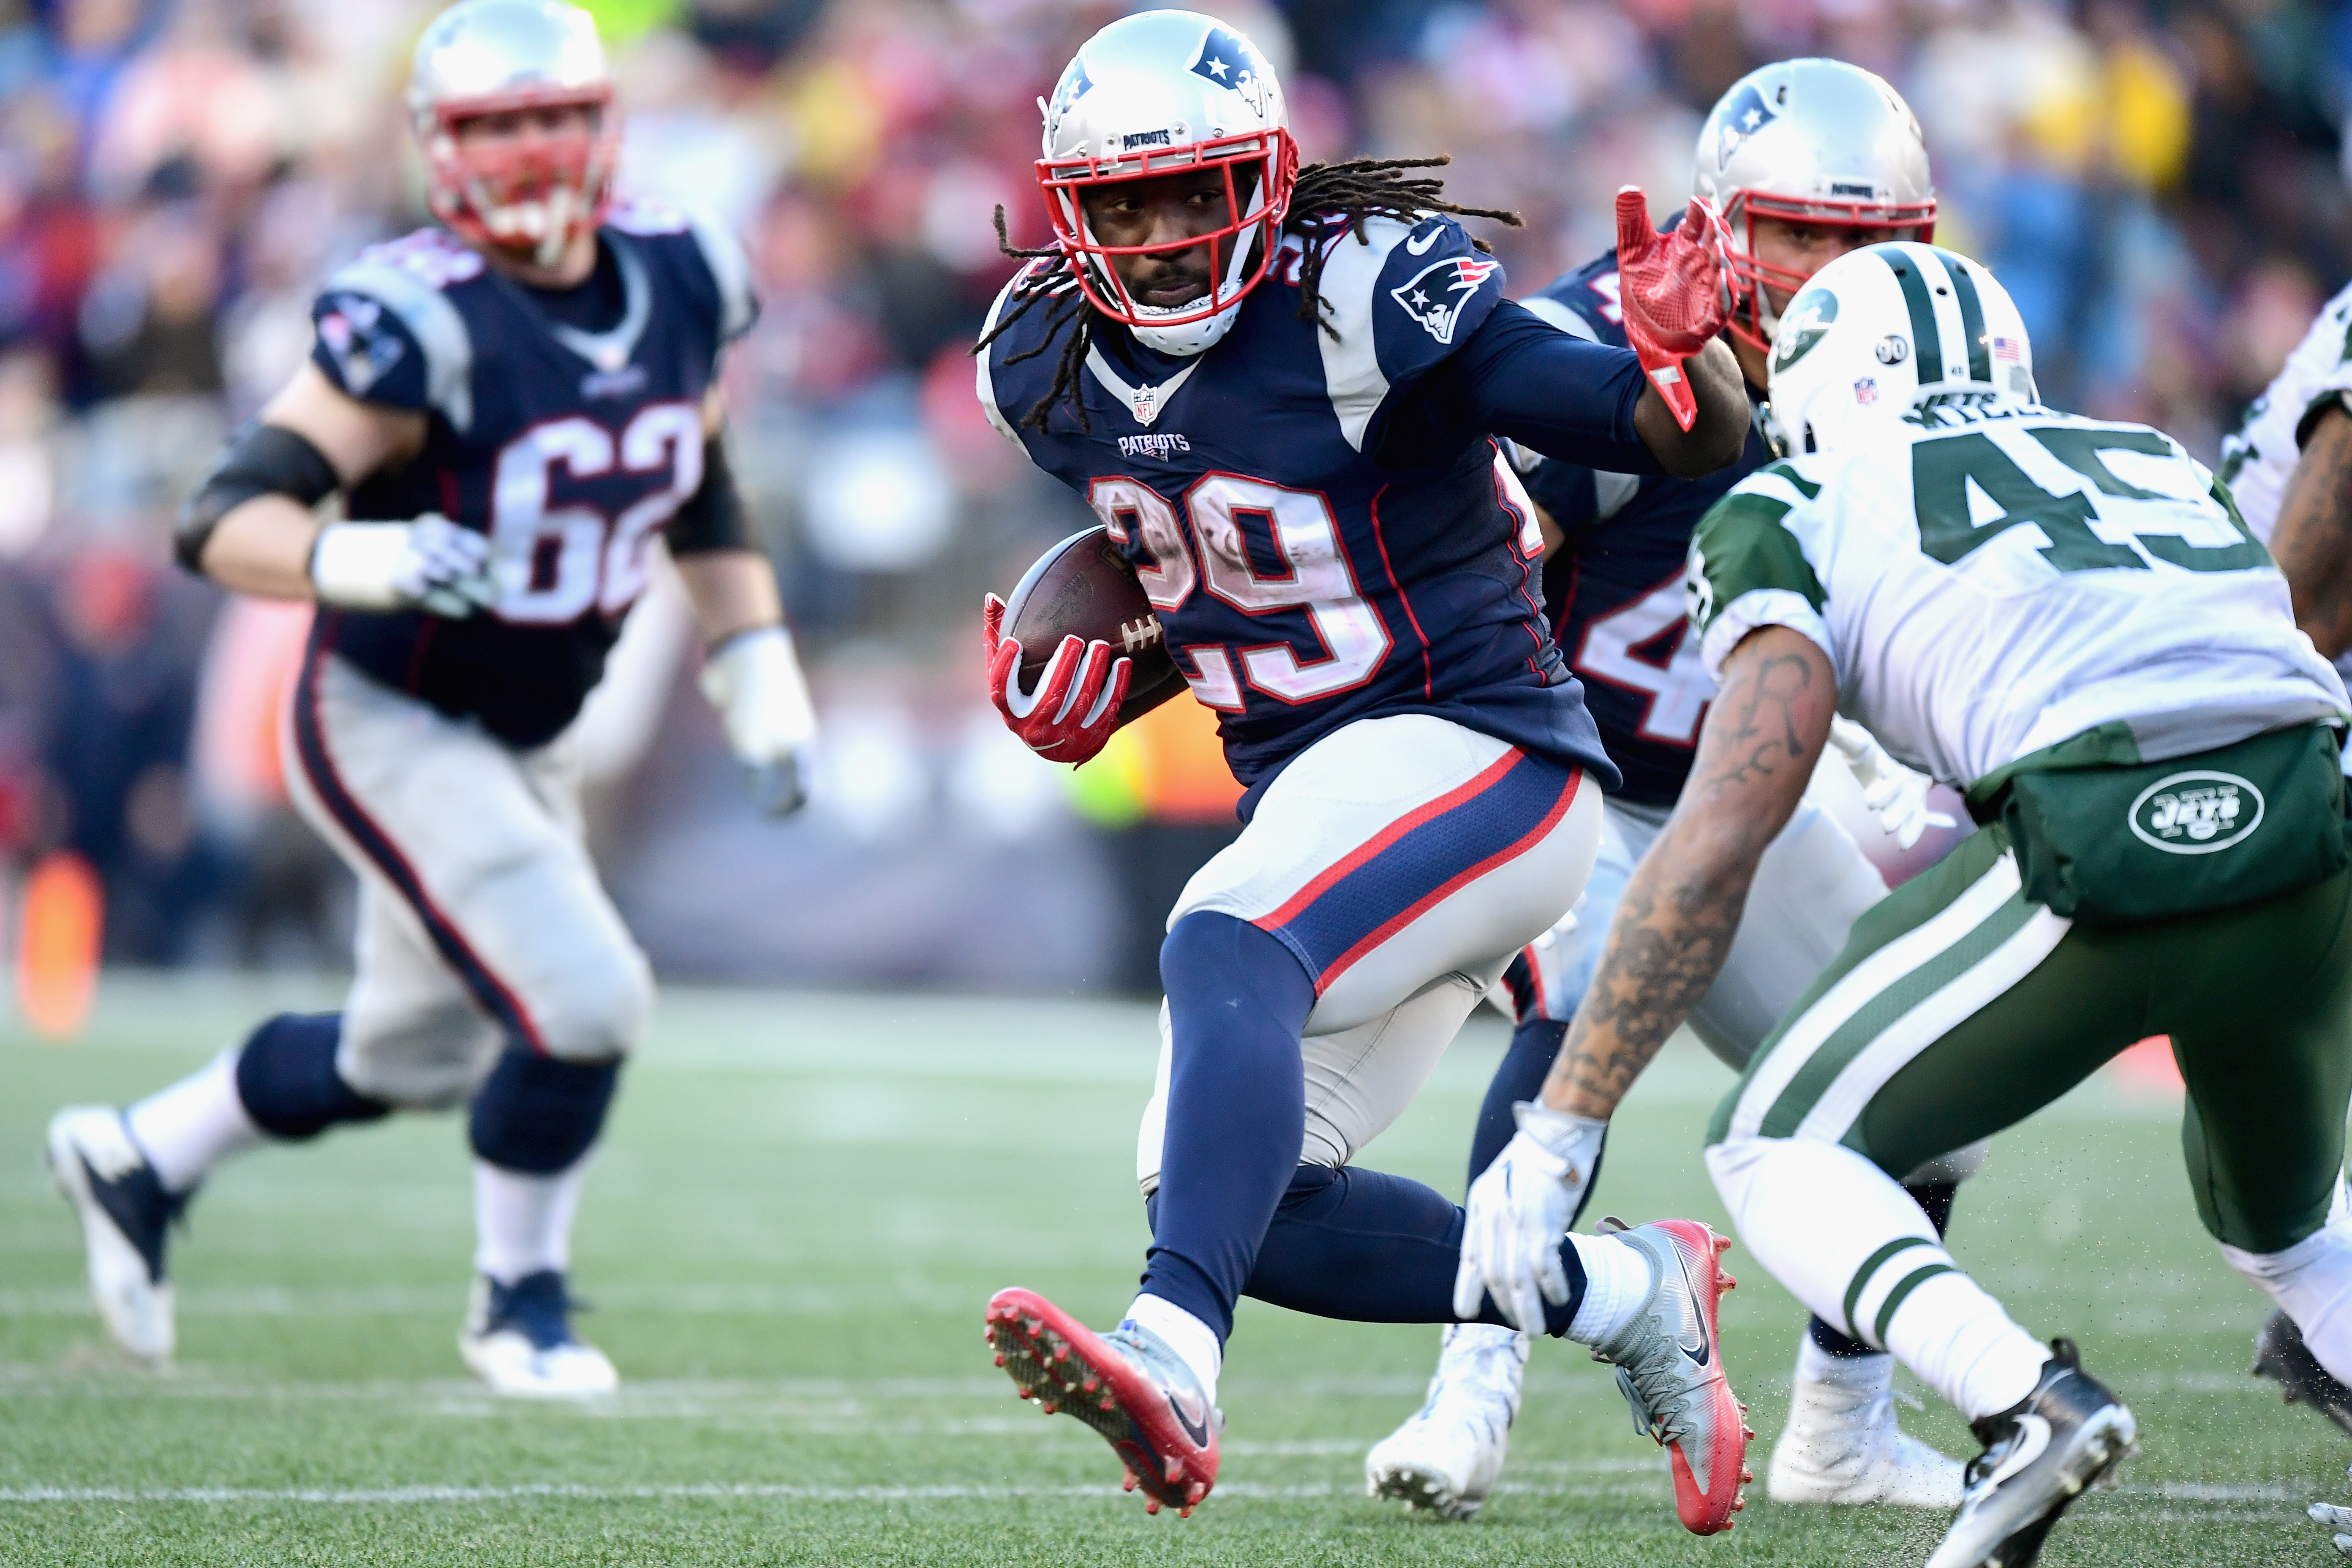 LeGarrette Blount and the Patriots will be tough to stop in the postseason. (Getty Images)